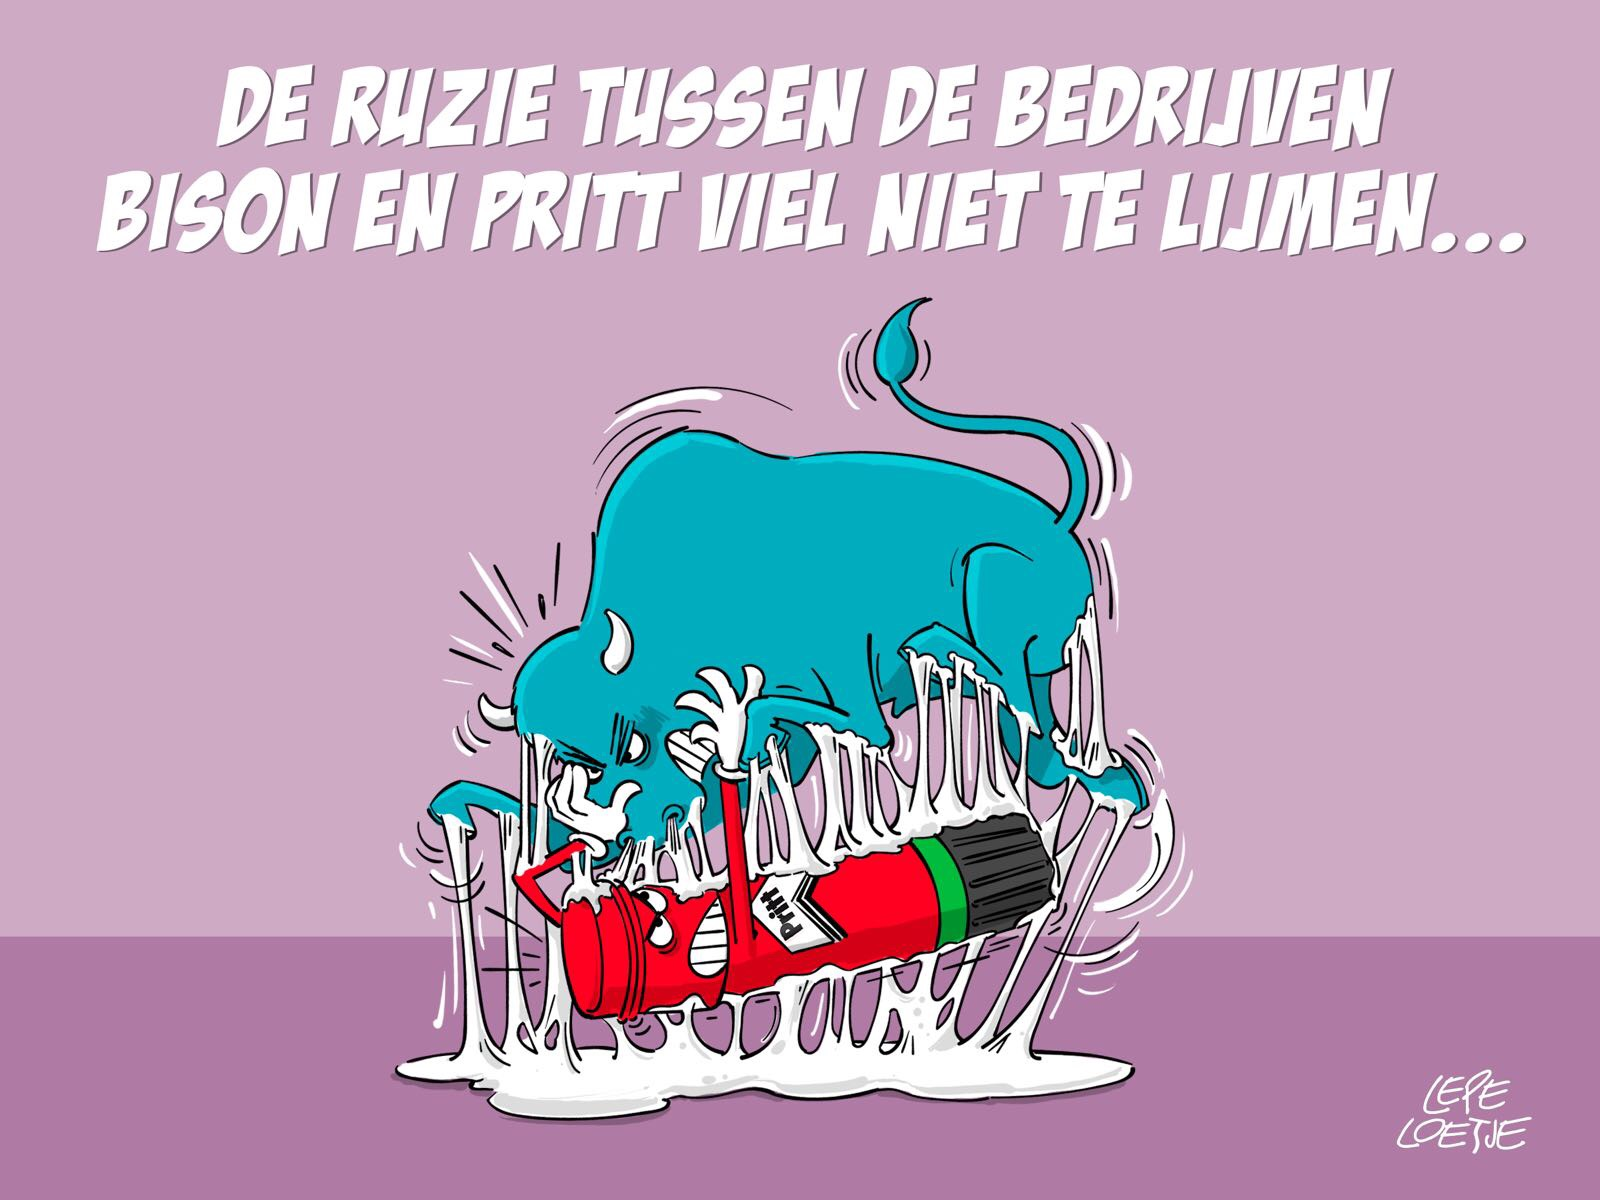 Lepe Loetje Cartoons Bison